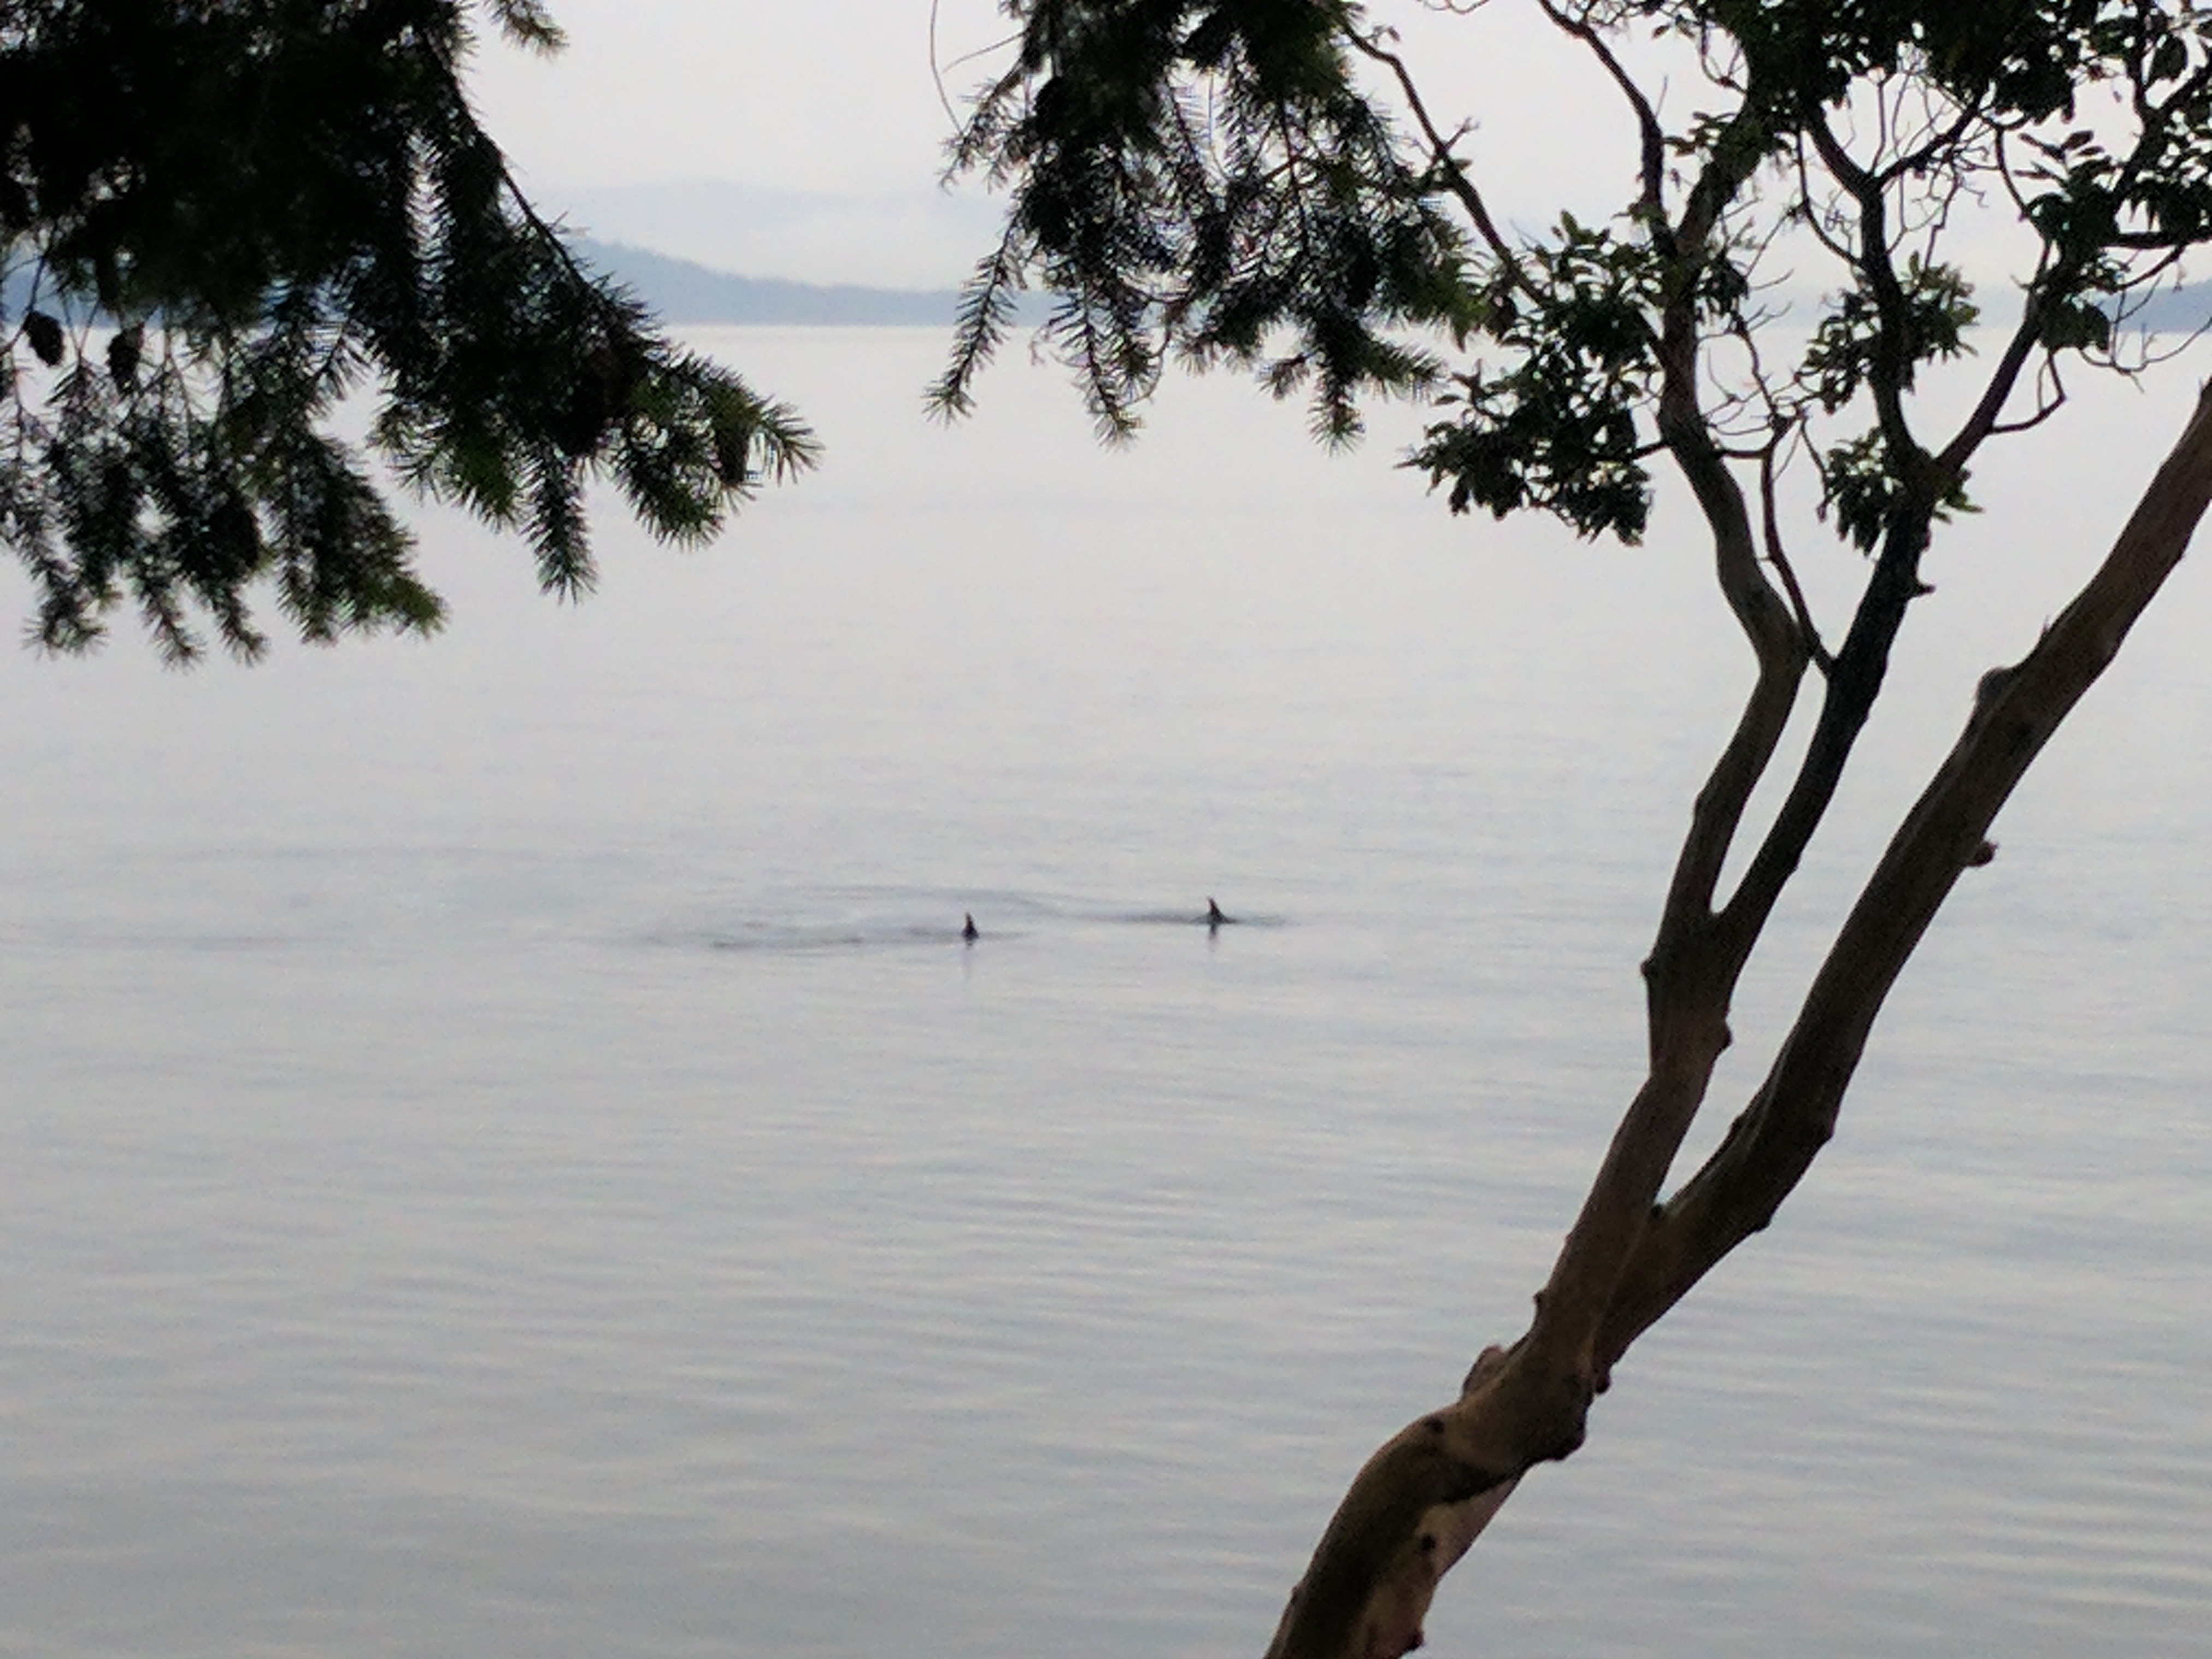 Whale Watching Pender Island